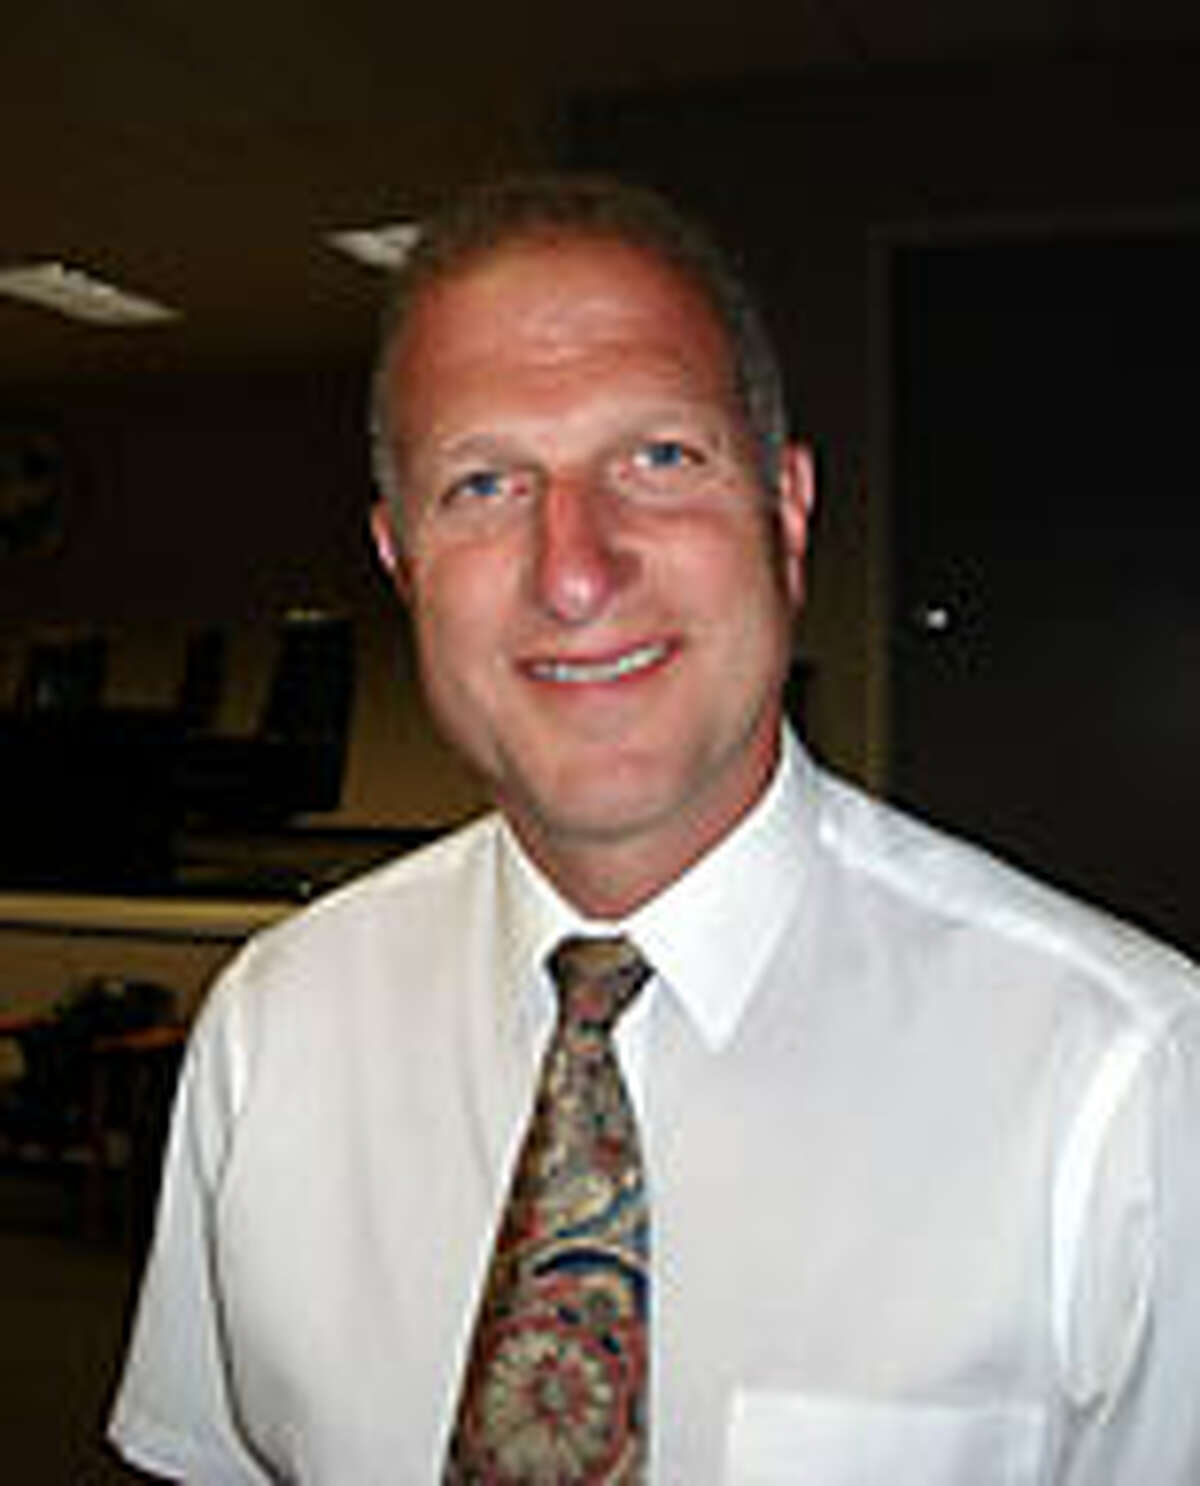 Mayor Mark Lauretti